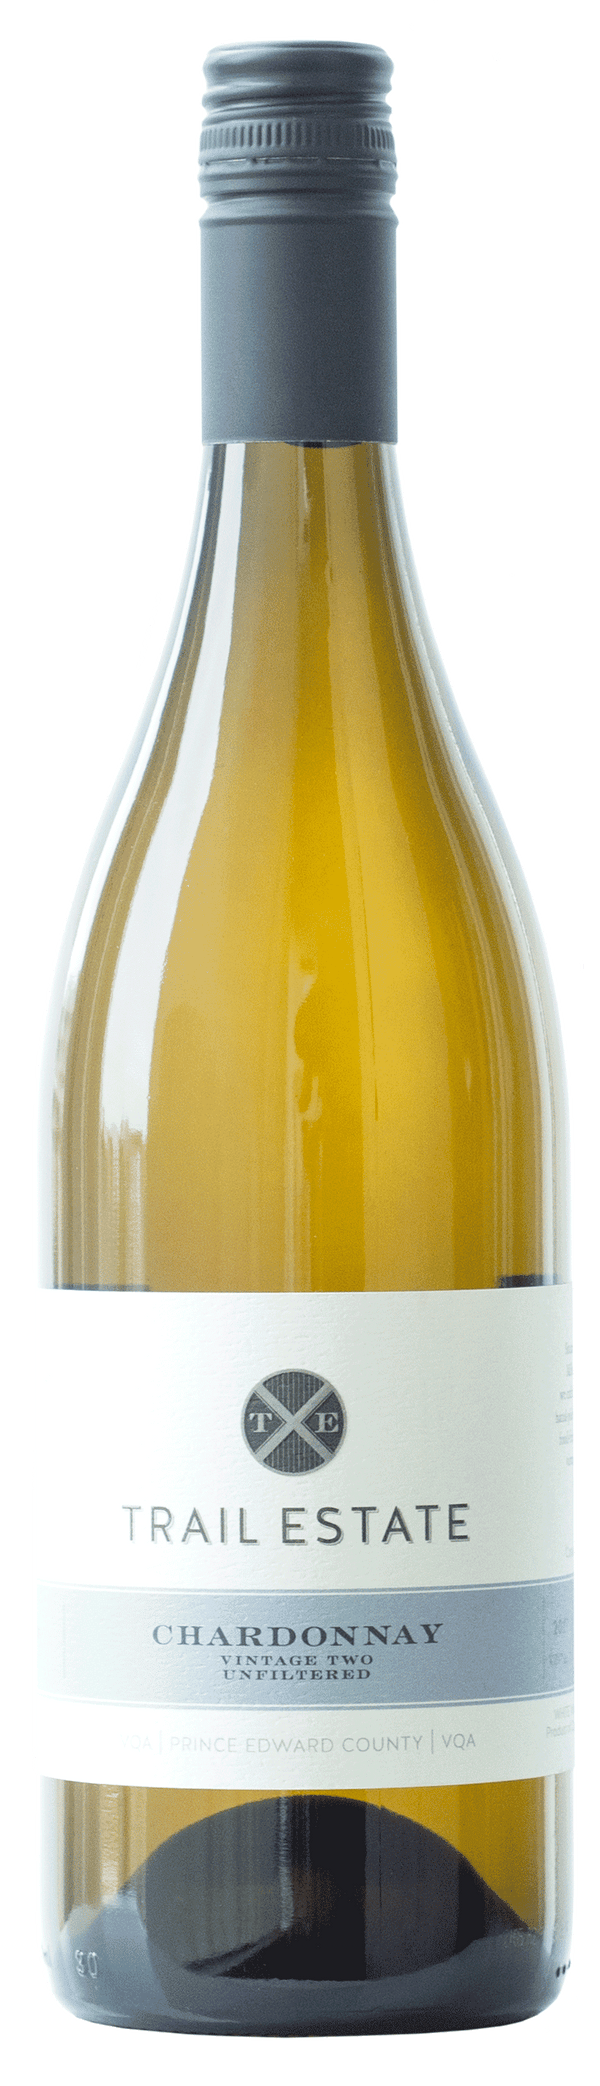 Unfiltered Chardonnay (Trail Estate Winery)